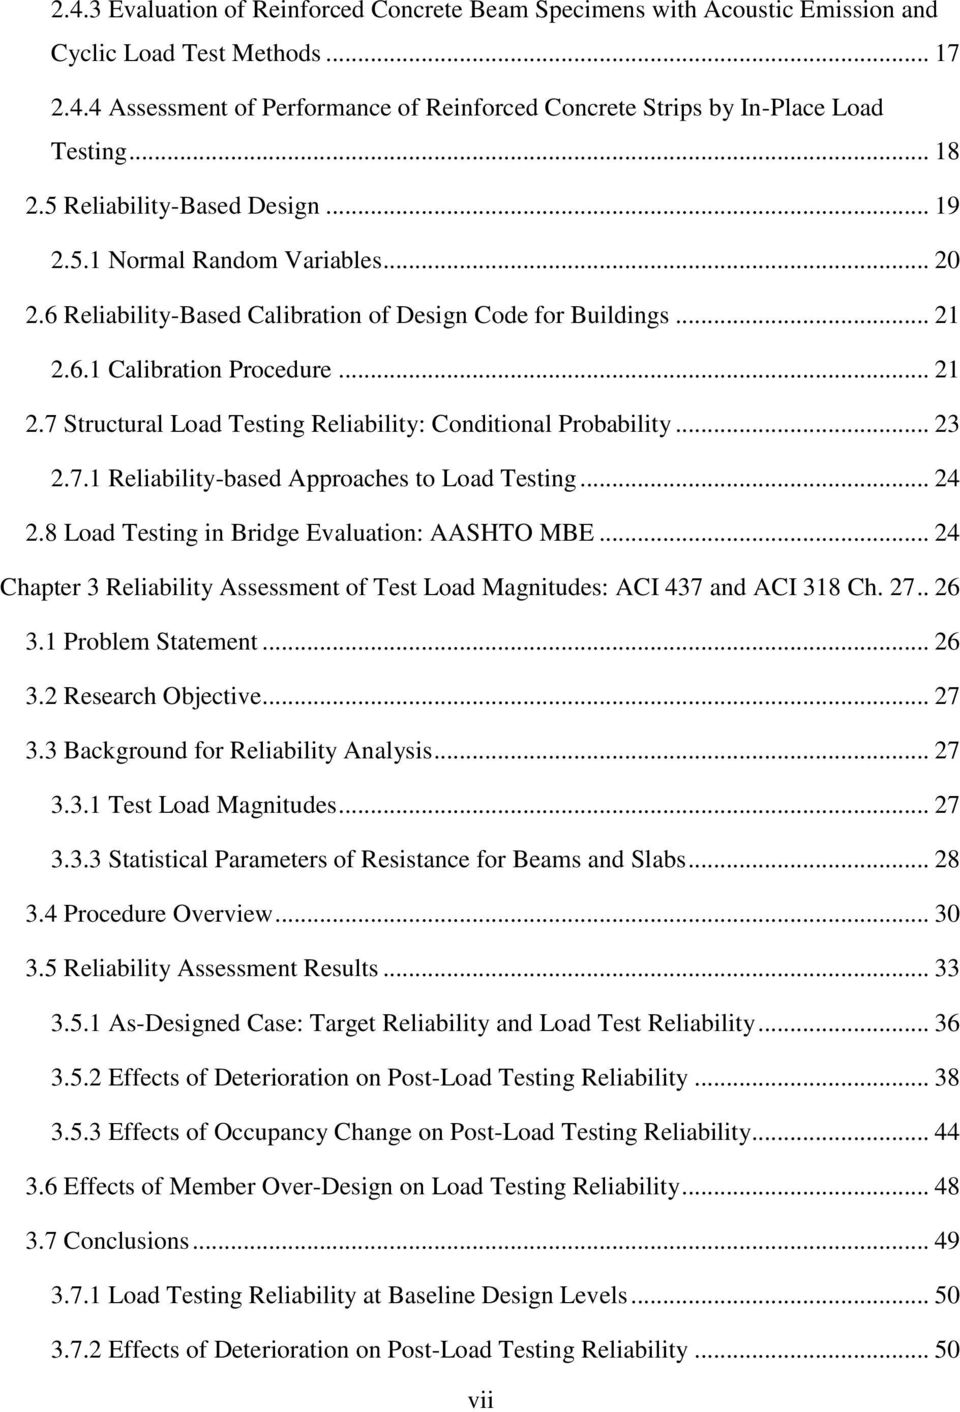 6.1 Calibration Procedure... 21 2.7 Structural Load Testing Reliability: Conditional Probability... 23 2.7.1 Reliability-based Approaches to Load Testing... 24 2.